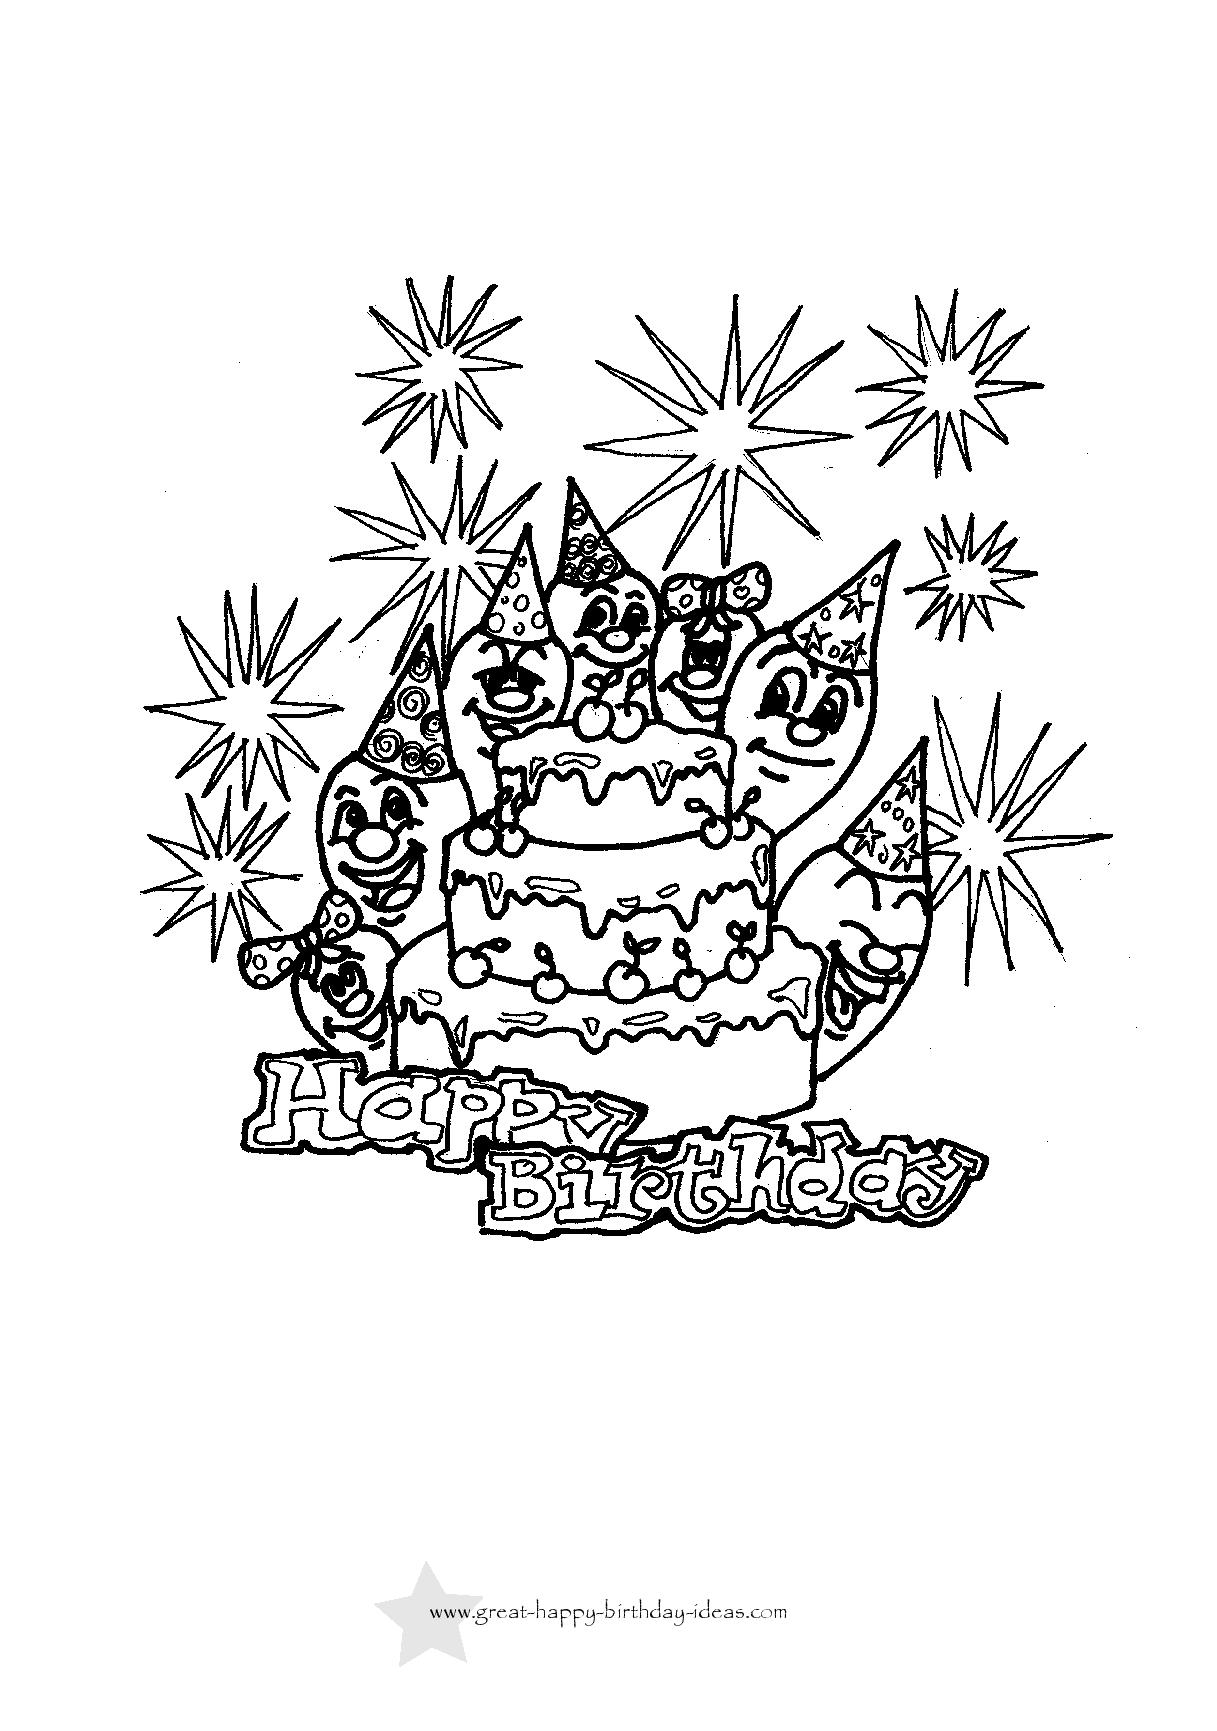 Birthday Coloring Cards